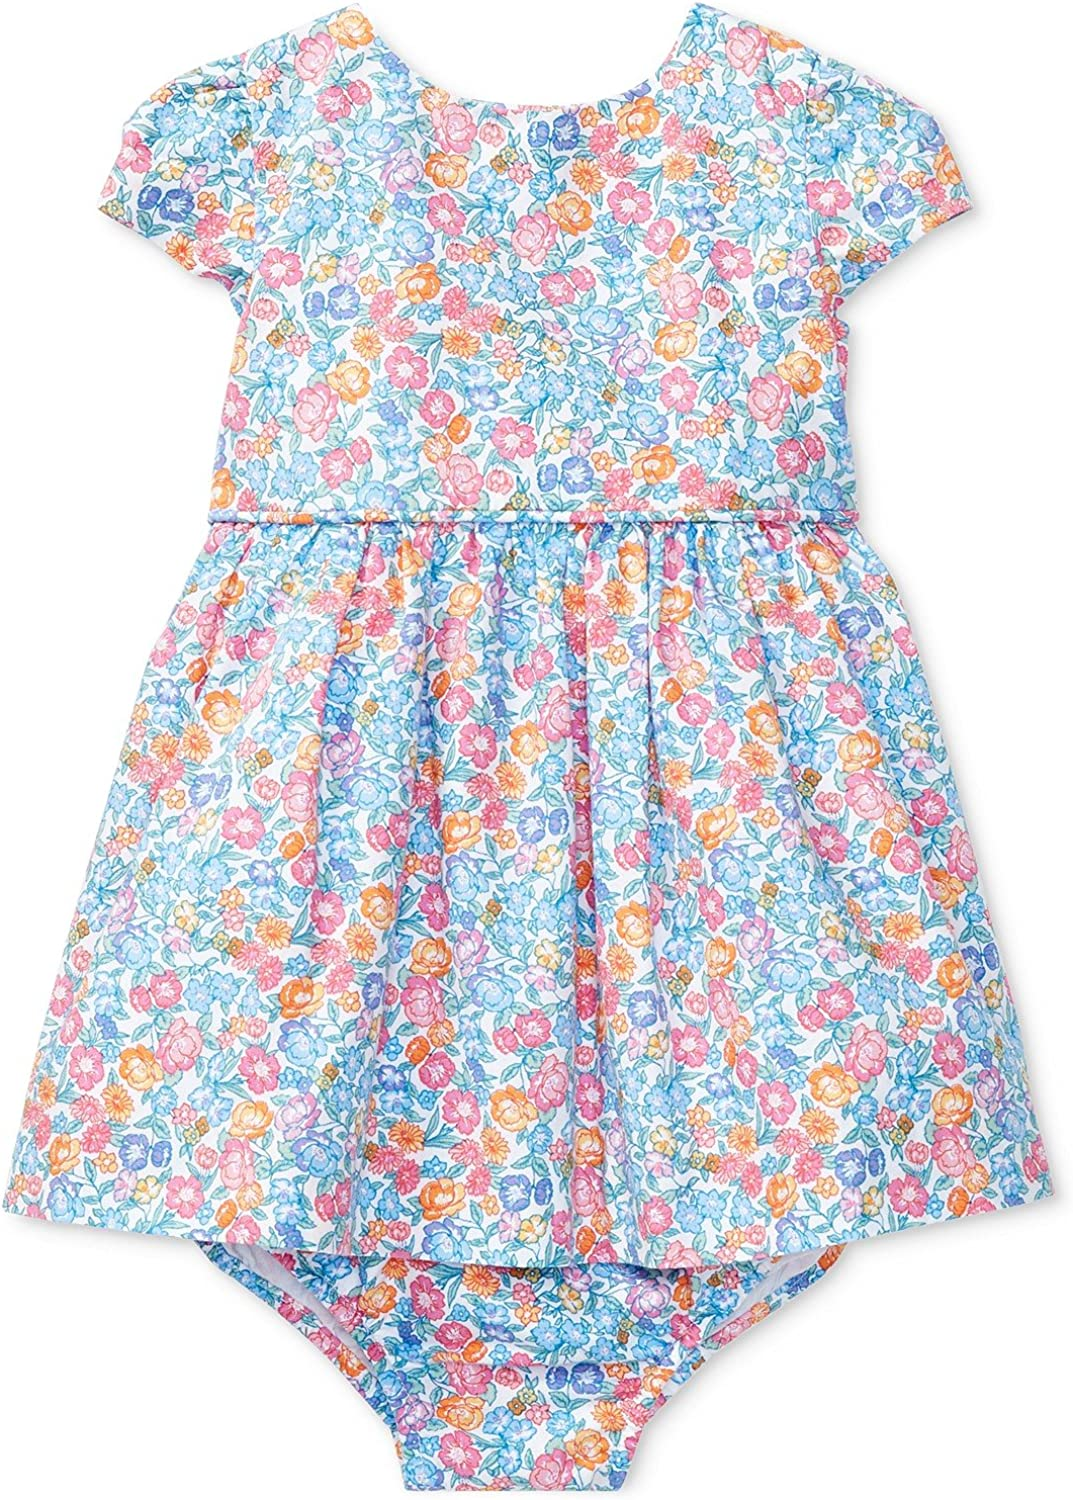 Printed cotton baby dress buttoned back